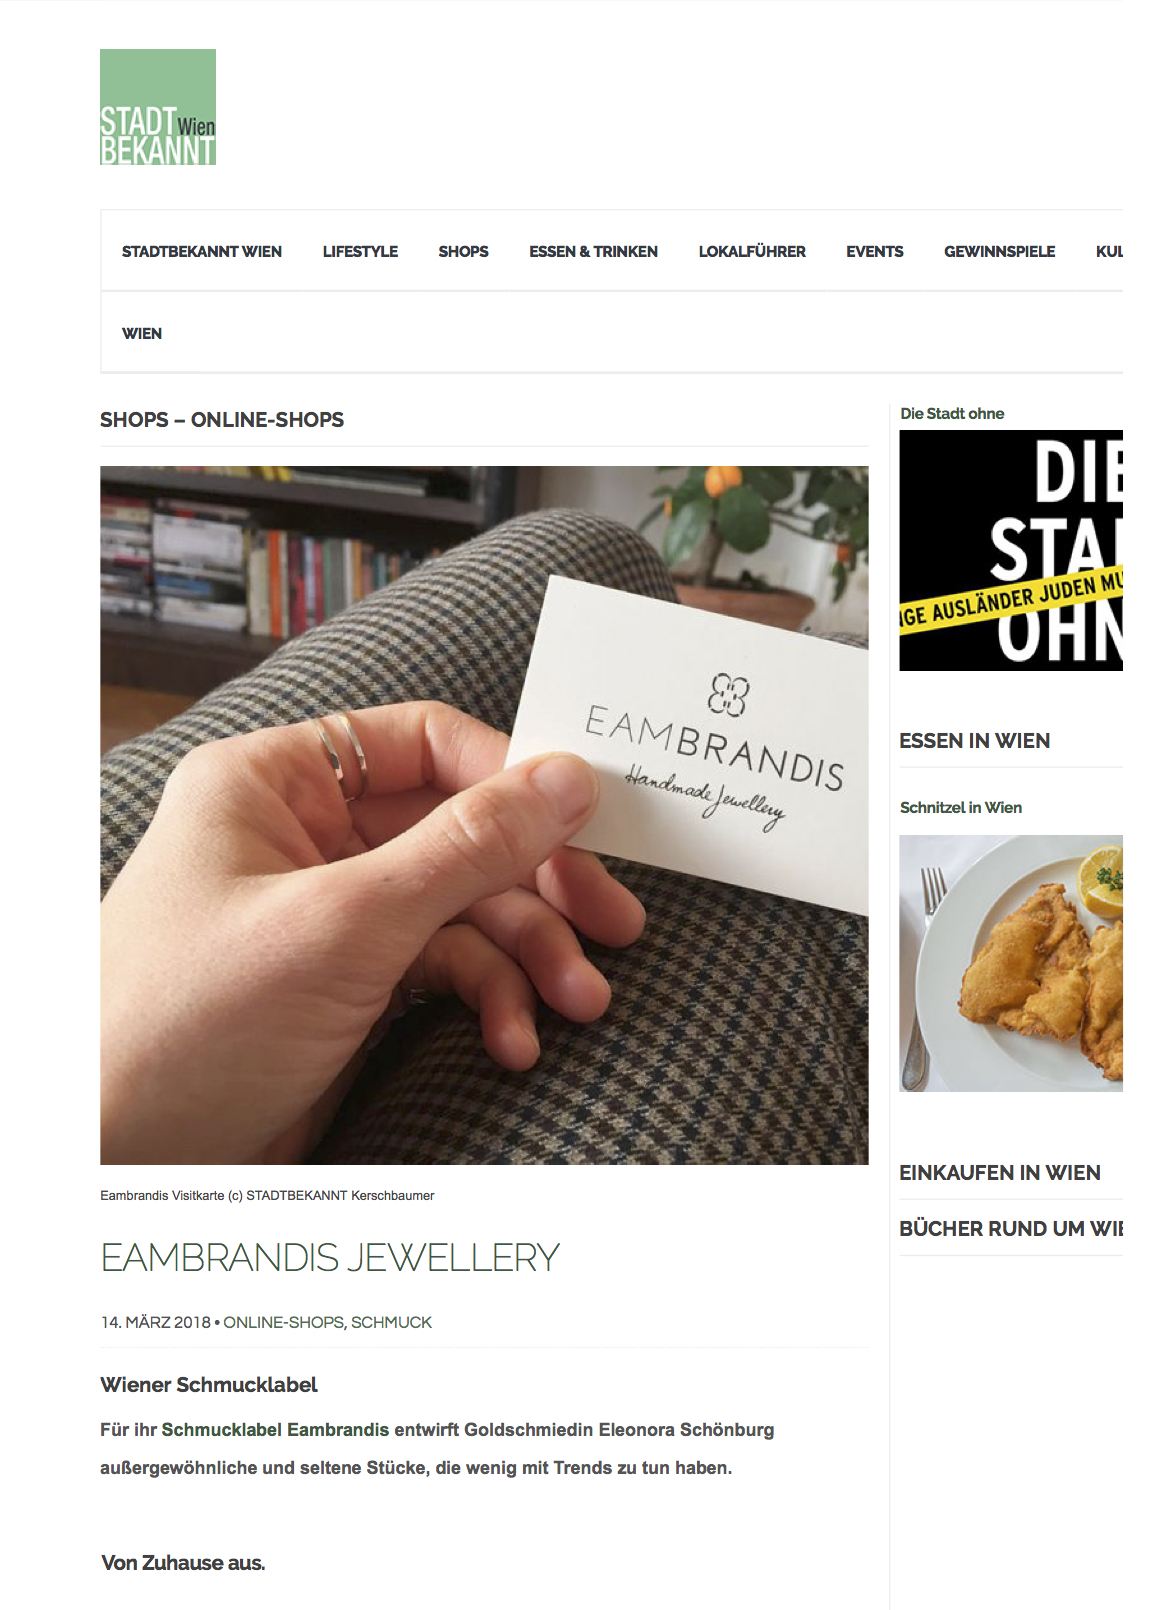 Press Appearances Of Eambrandis Jewellery And Its Designer Ella